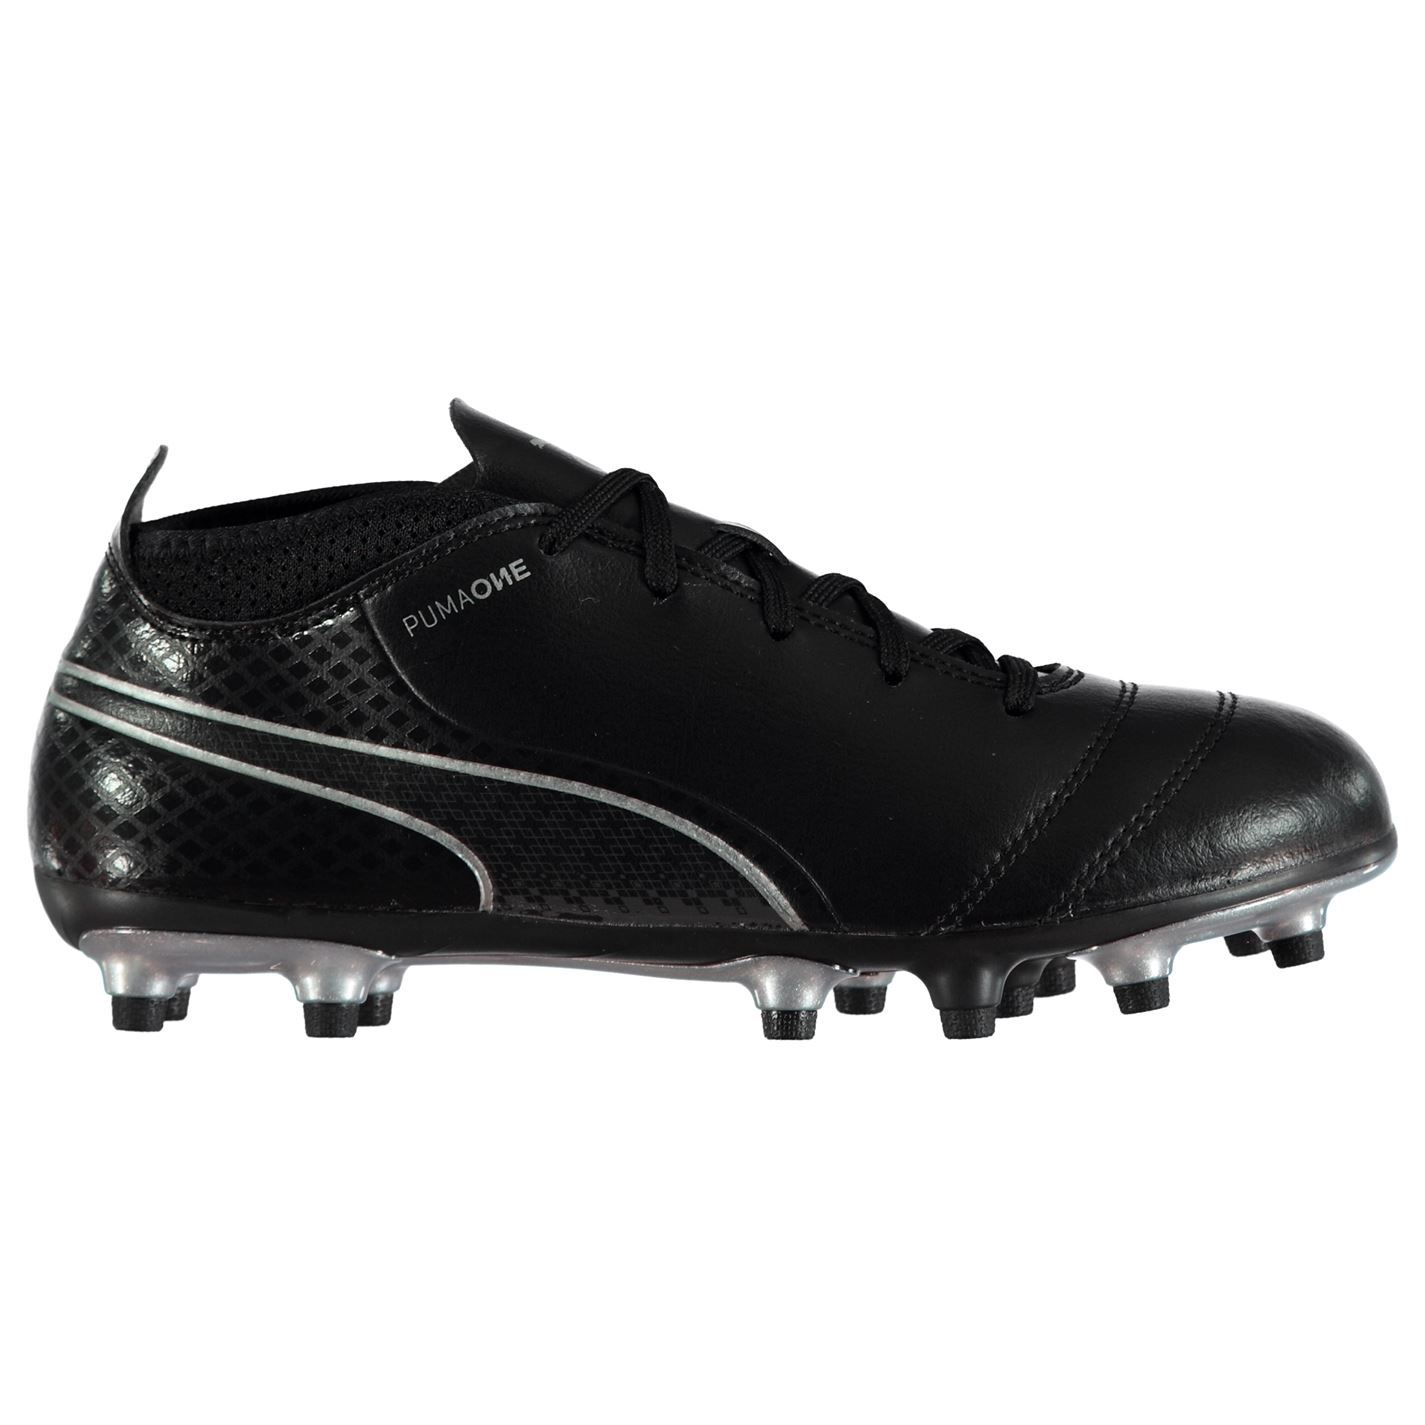 544b4acf Details about Puma One 17.4 FG Firm Ground Football Boots Juniors Black  Soccer Shoes Cleats